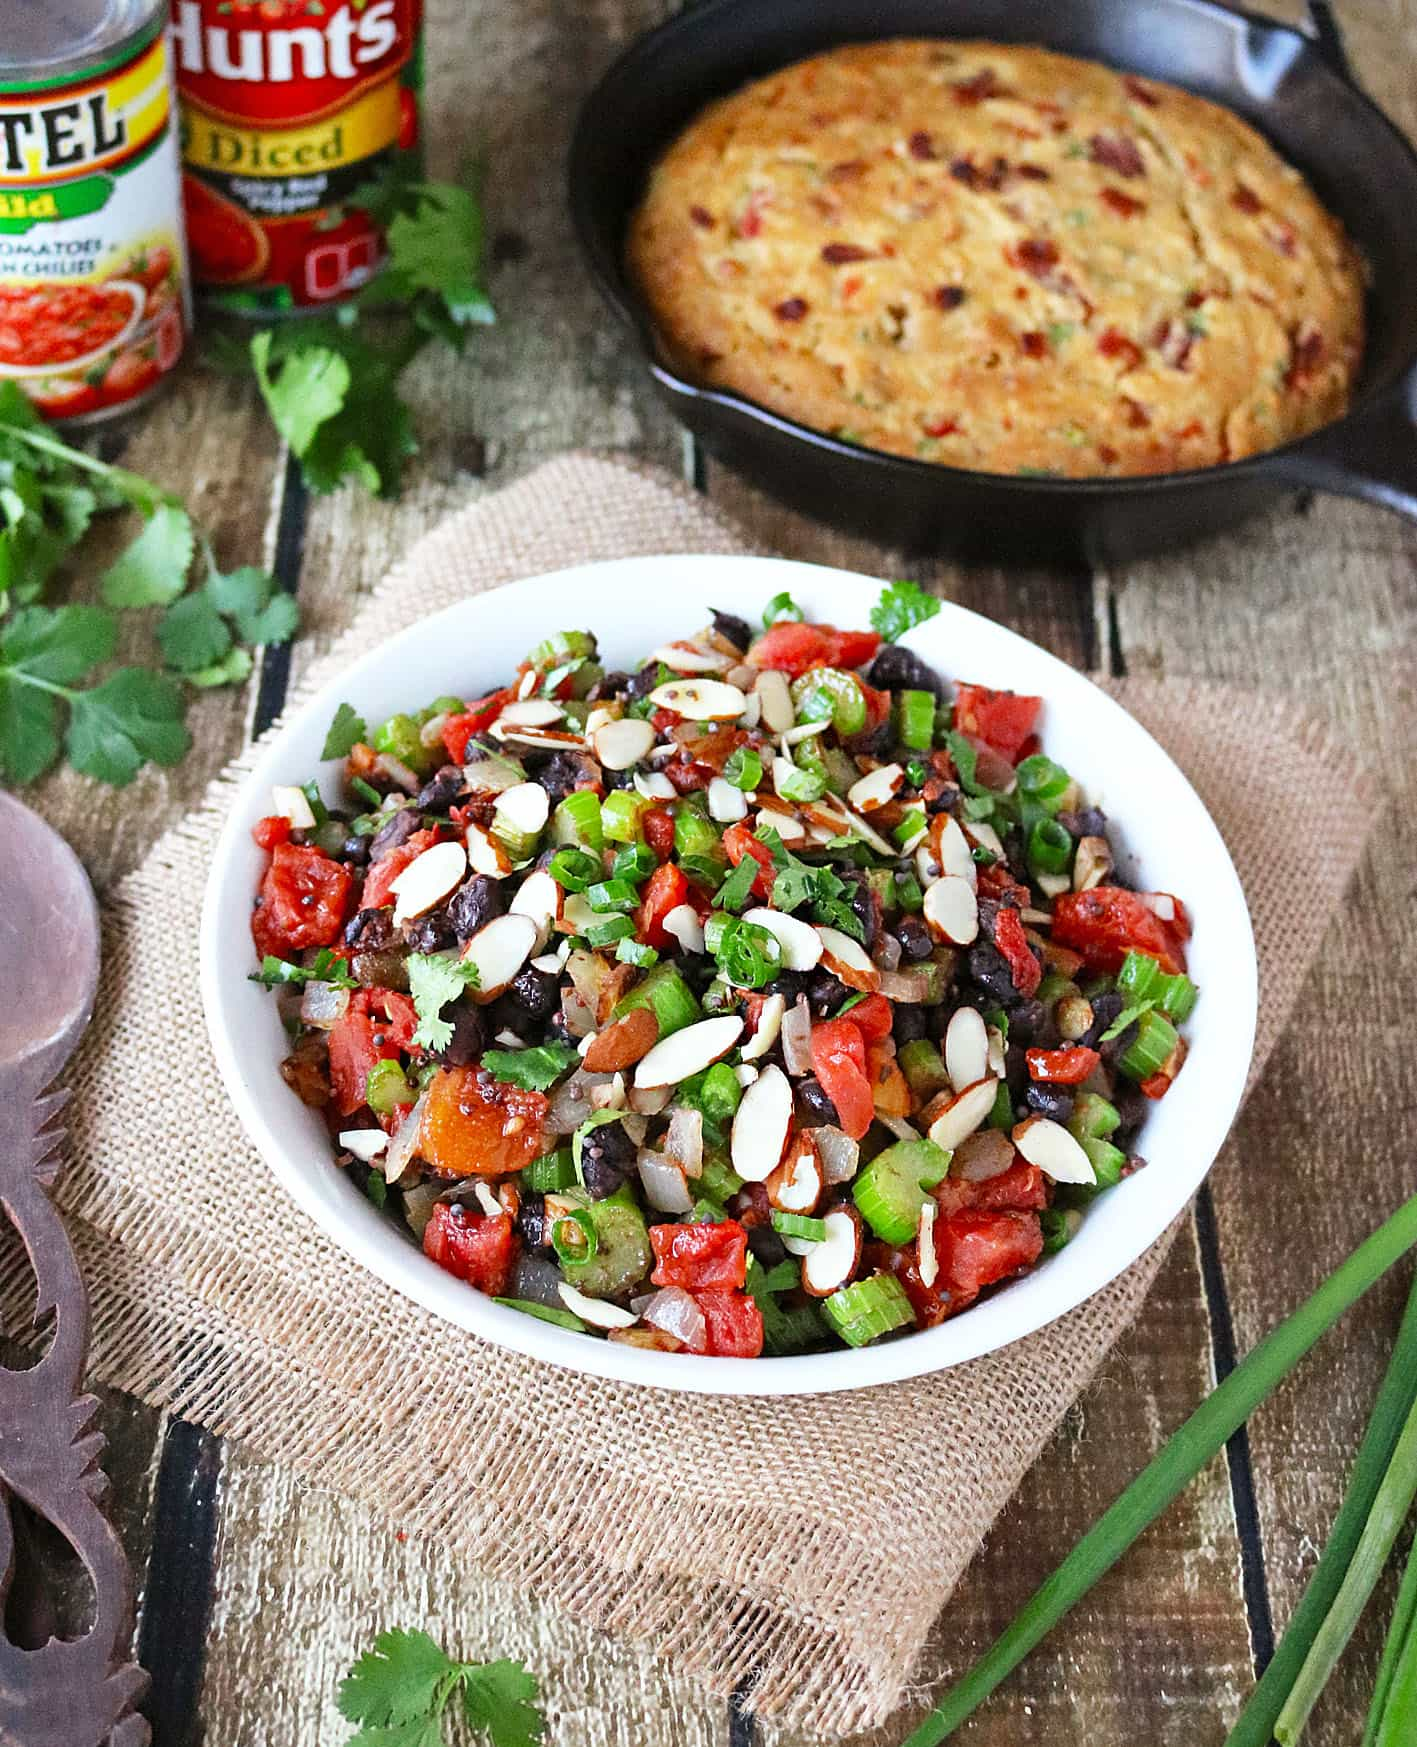 Celery Bean Tomato Sald is the perfect accompaniment to Tomato Bacon Skillet Bread - both are ready in 40 minutes!